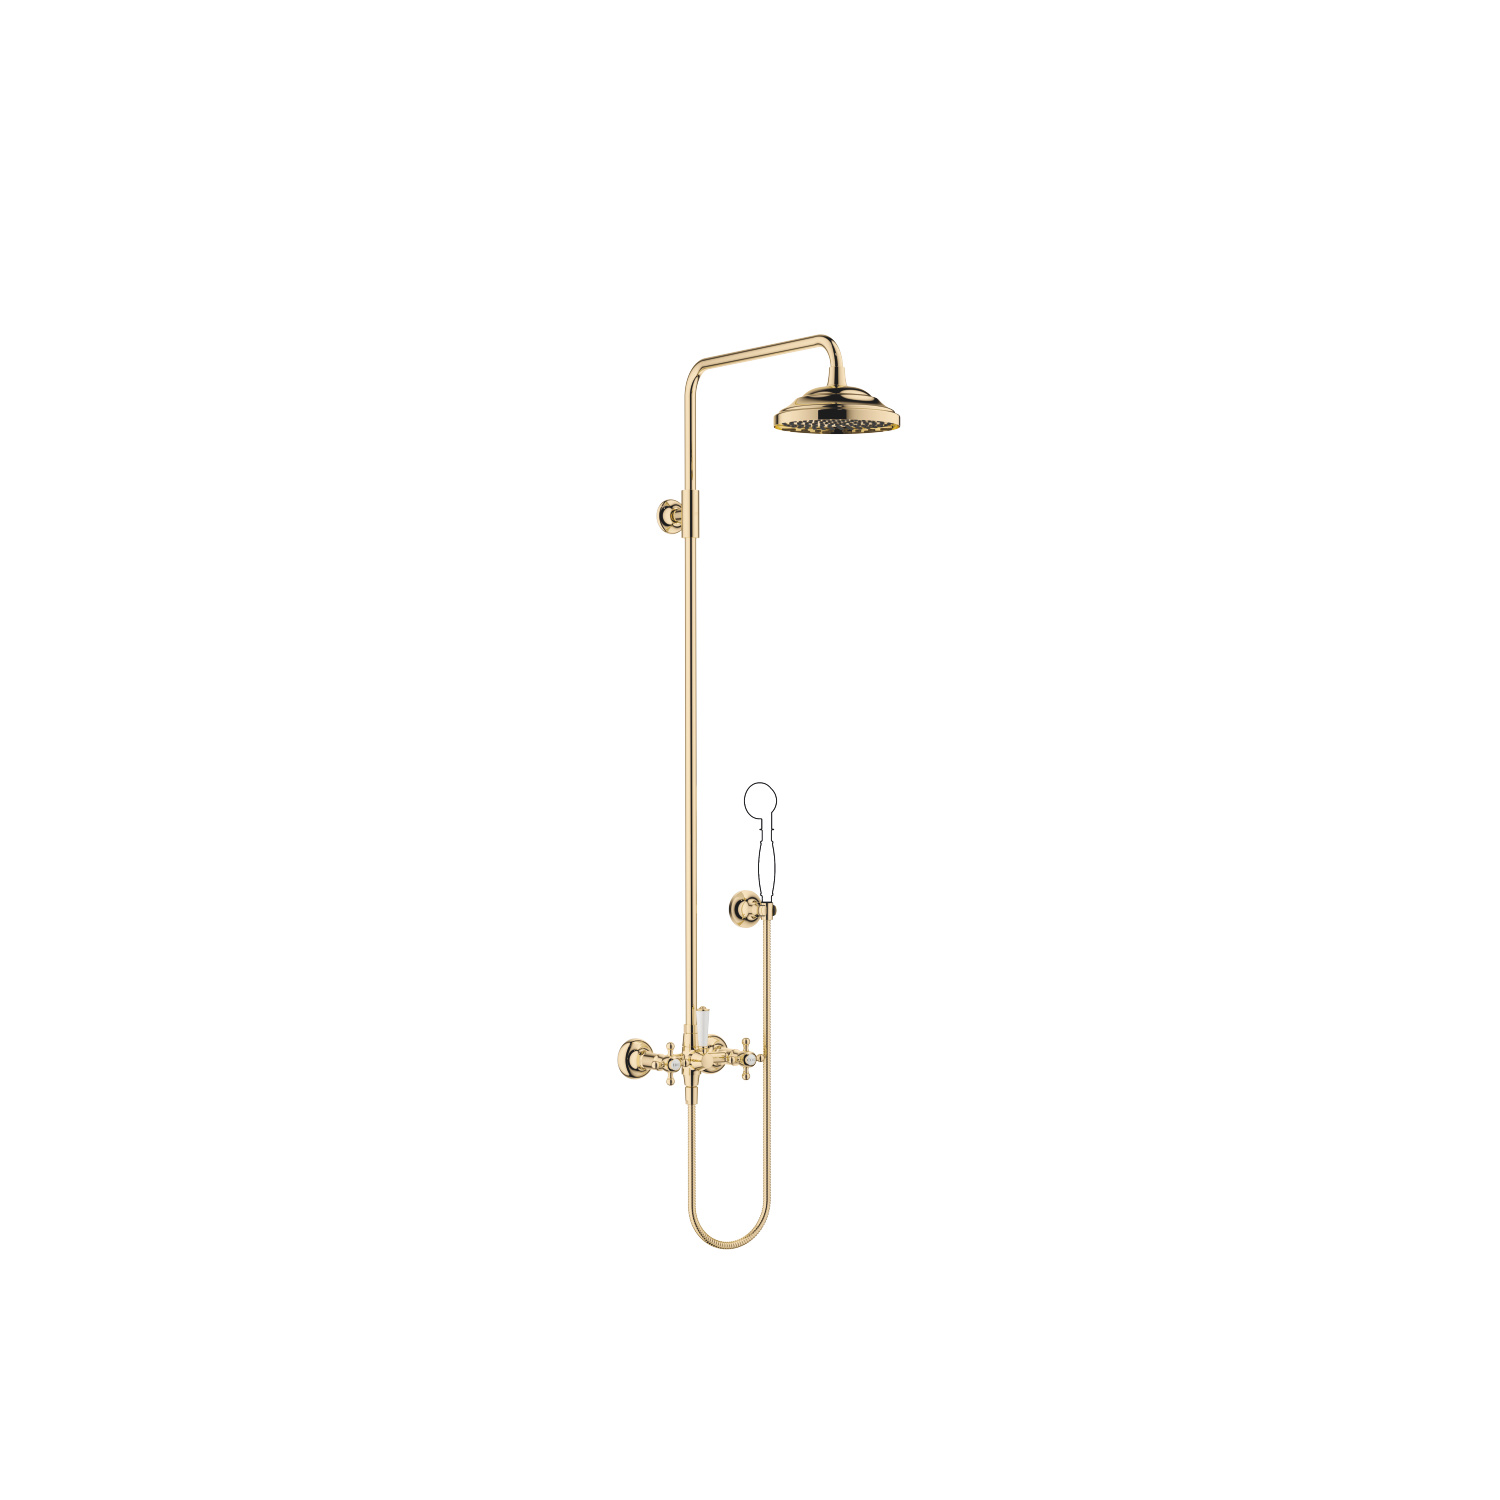 Showerpipe with shower mixer without hand shower - Durabrass